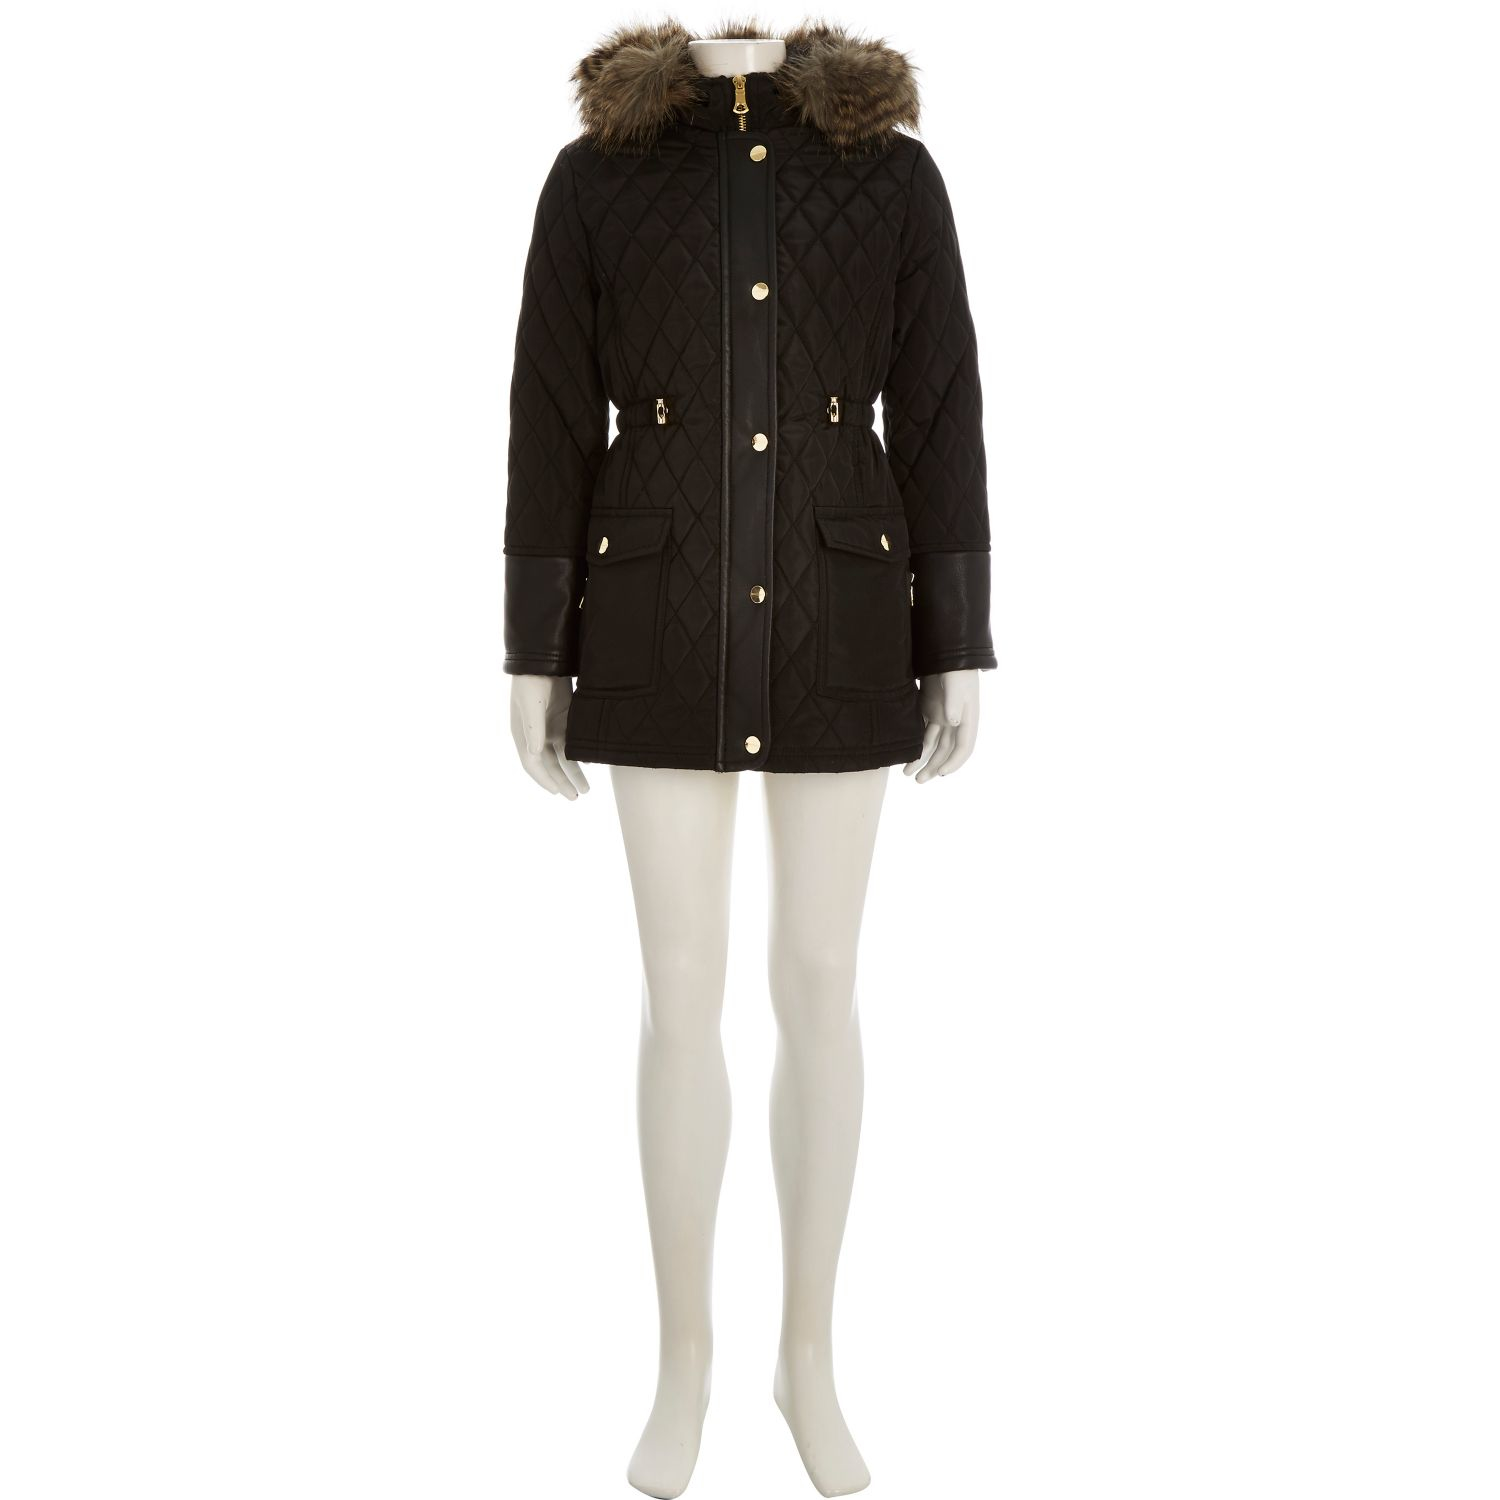 River island Girls Black Quilted Longline Parka Coat in Black | Lyst